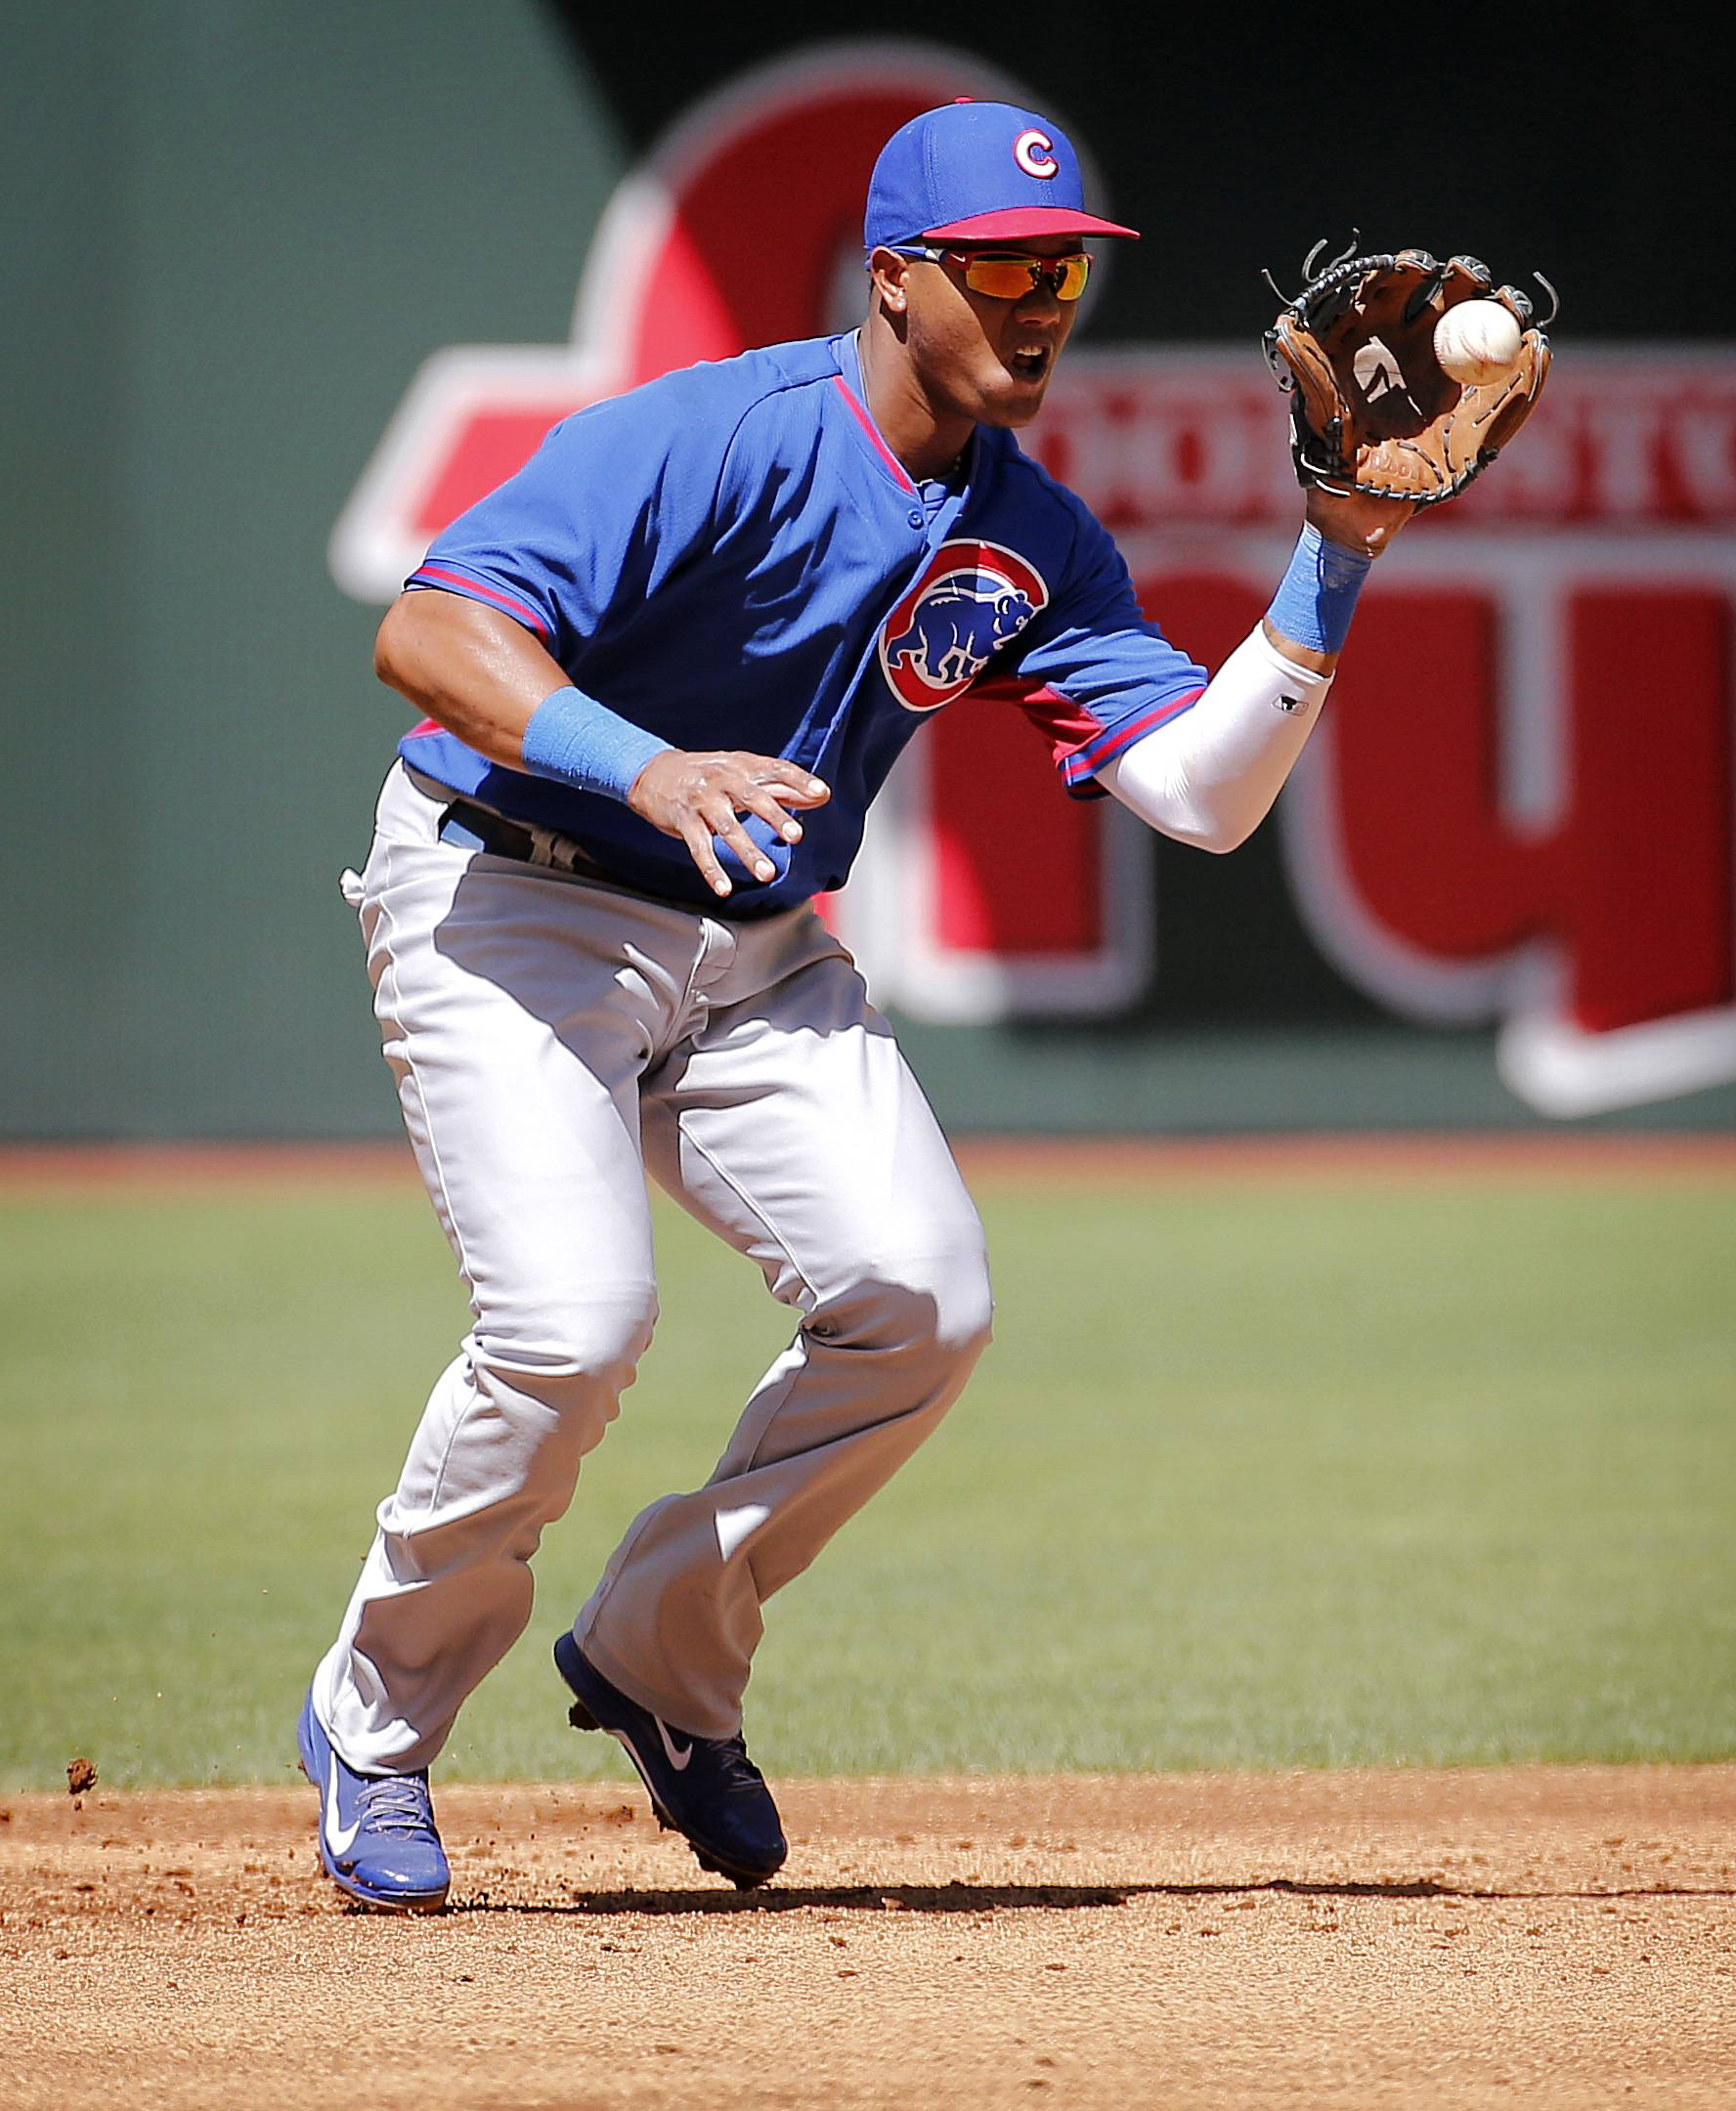 Castro back for spring finale, Cubs beat D'backs